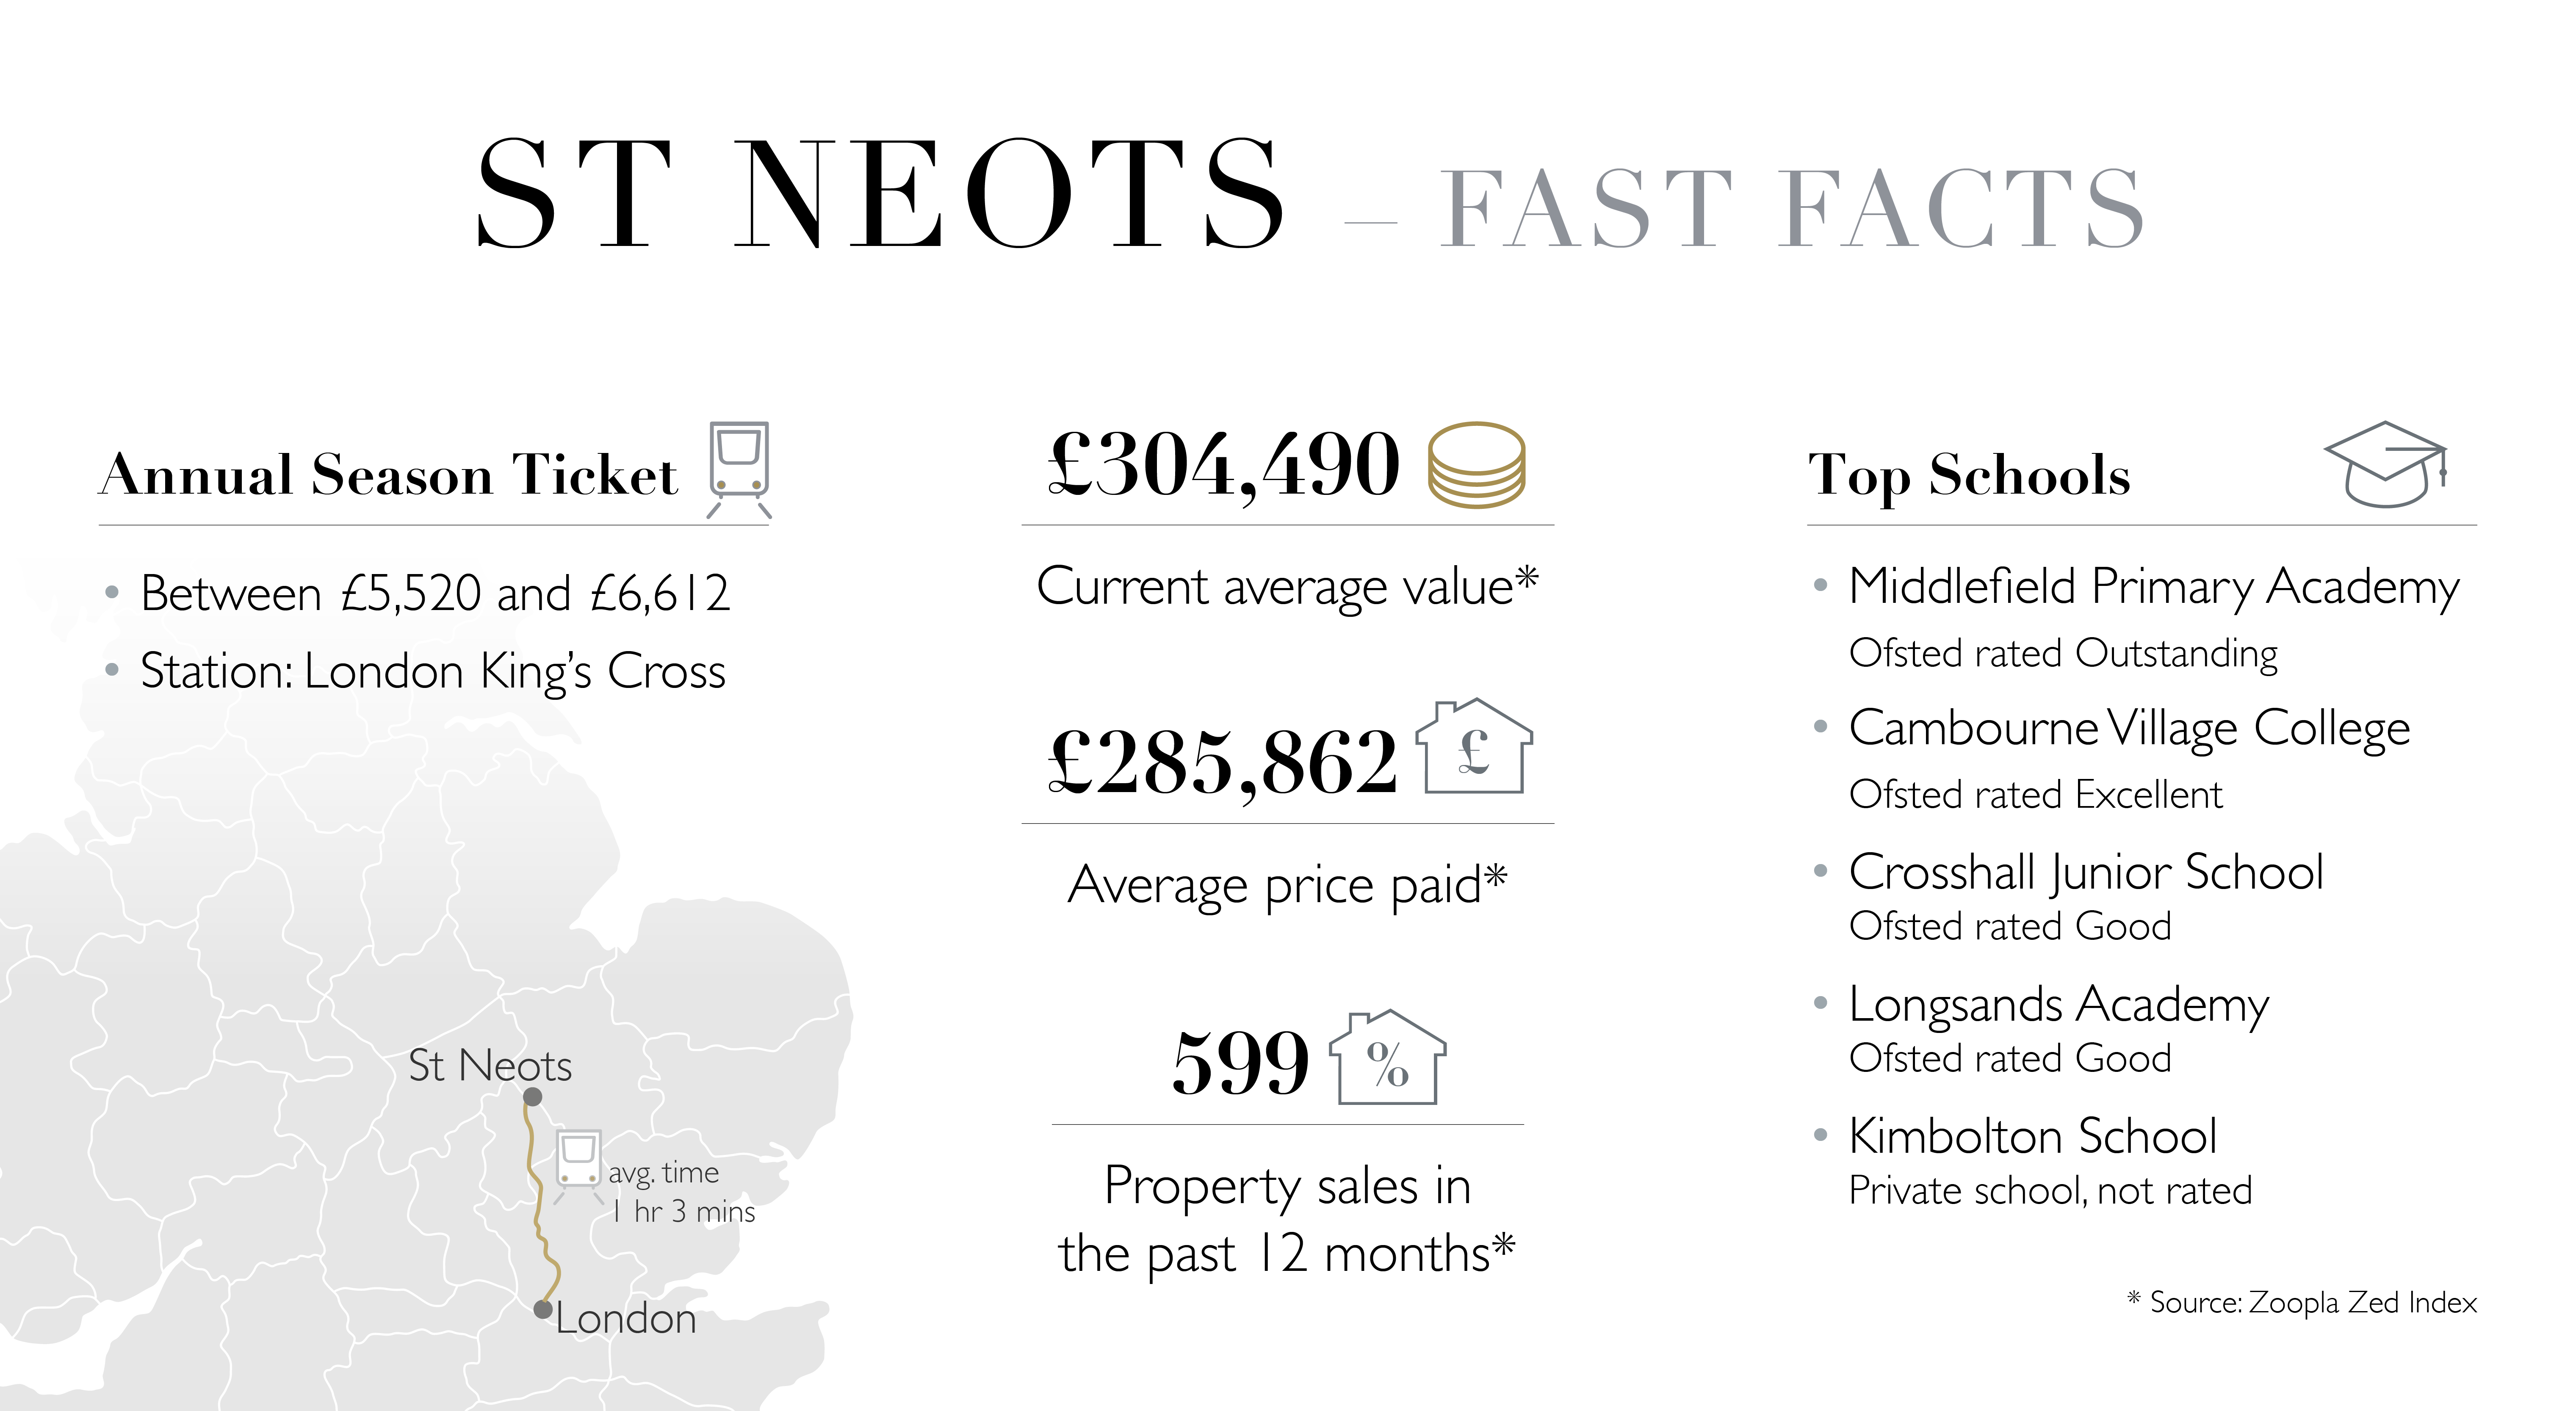 St Neots Fast Facts